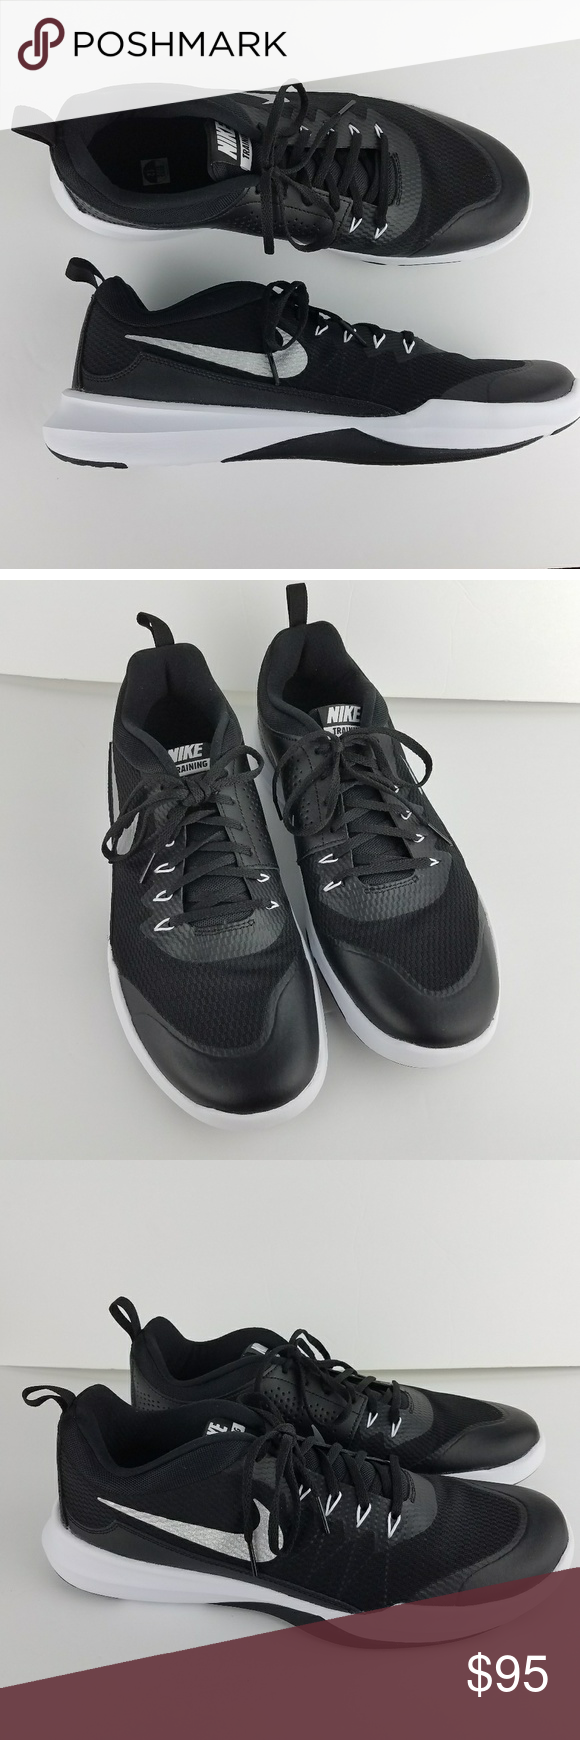 f0bde0086a5 Nike Legend Trainer Mens Shoes 924206 001 NEW 12 Shoe  Nike Legend Trainer  Mens Training